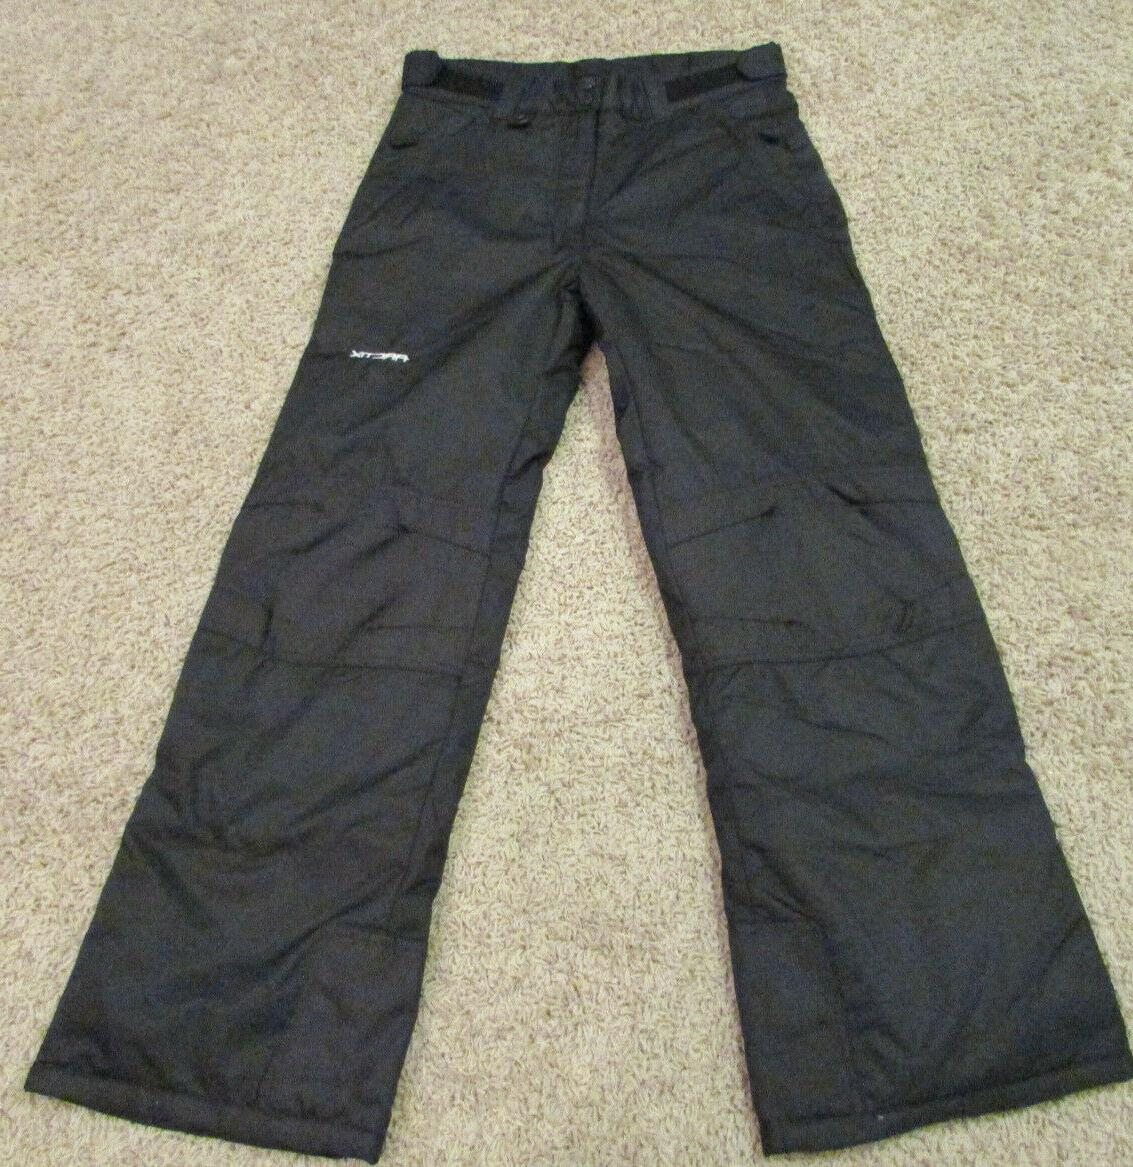 insulated winter snow ski pants new youth